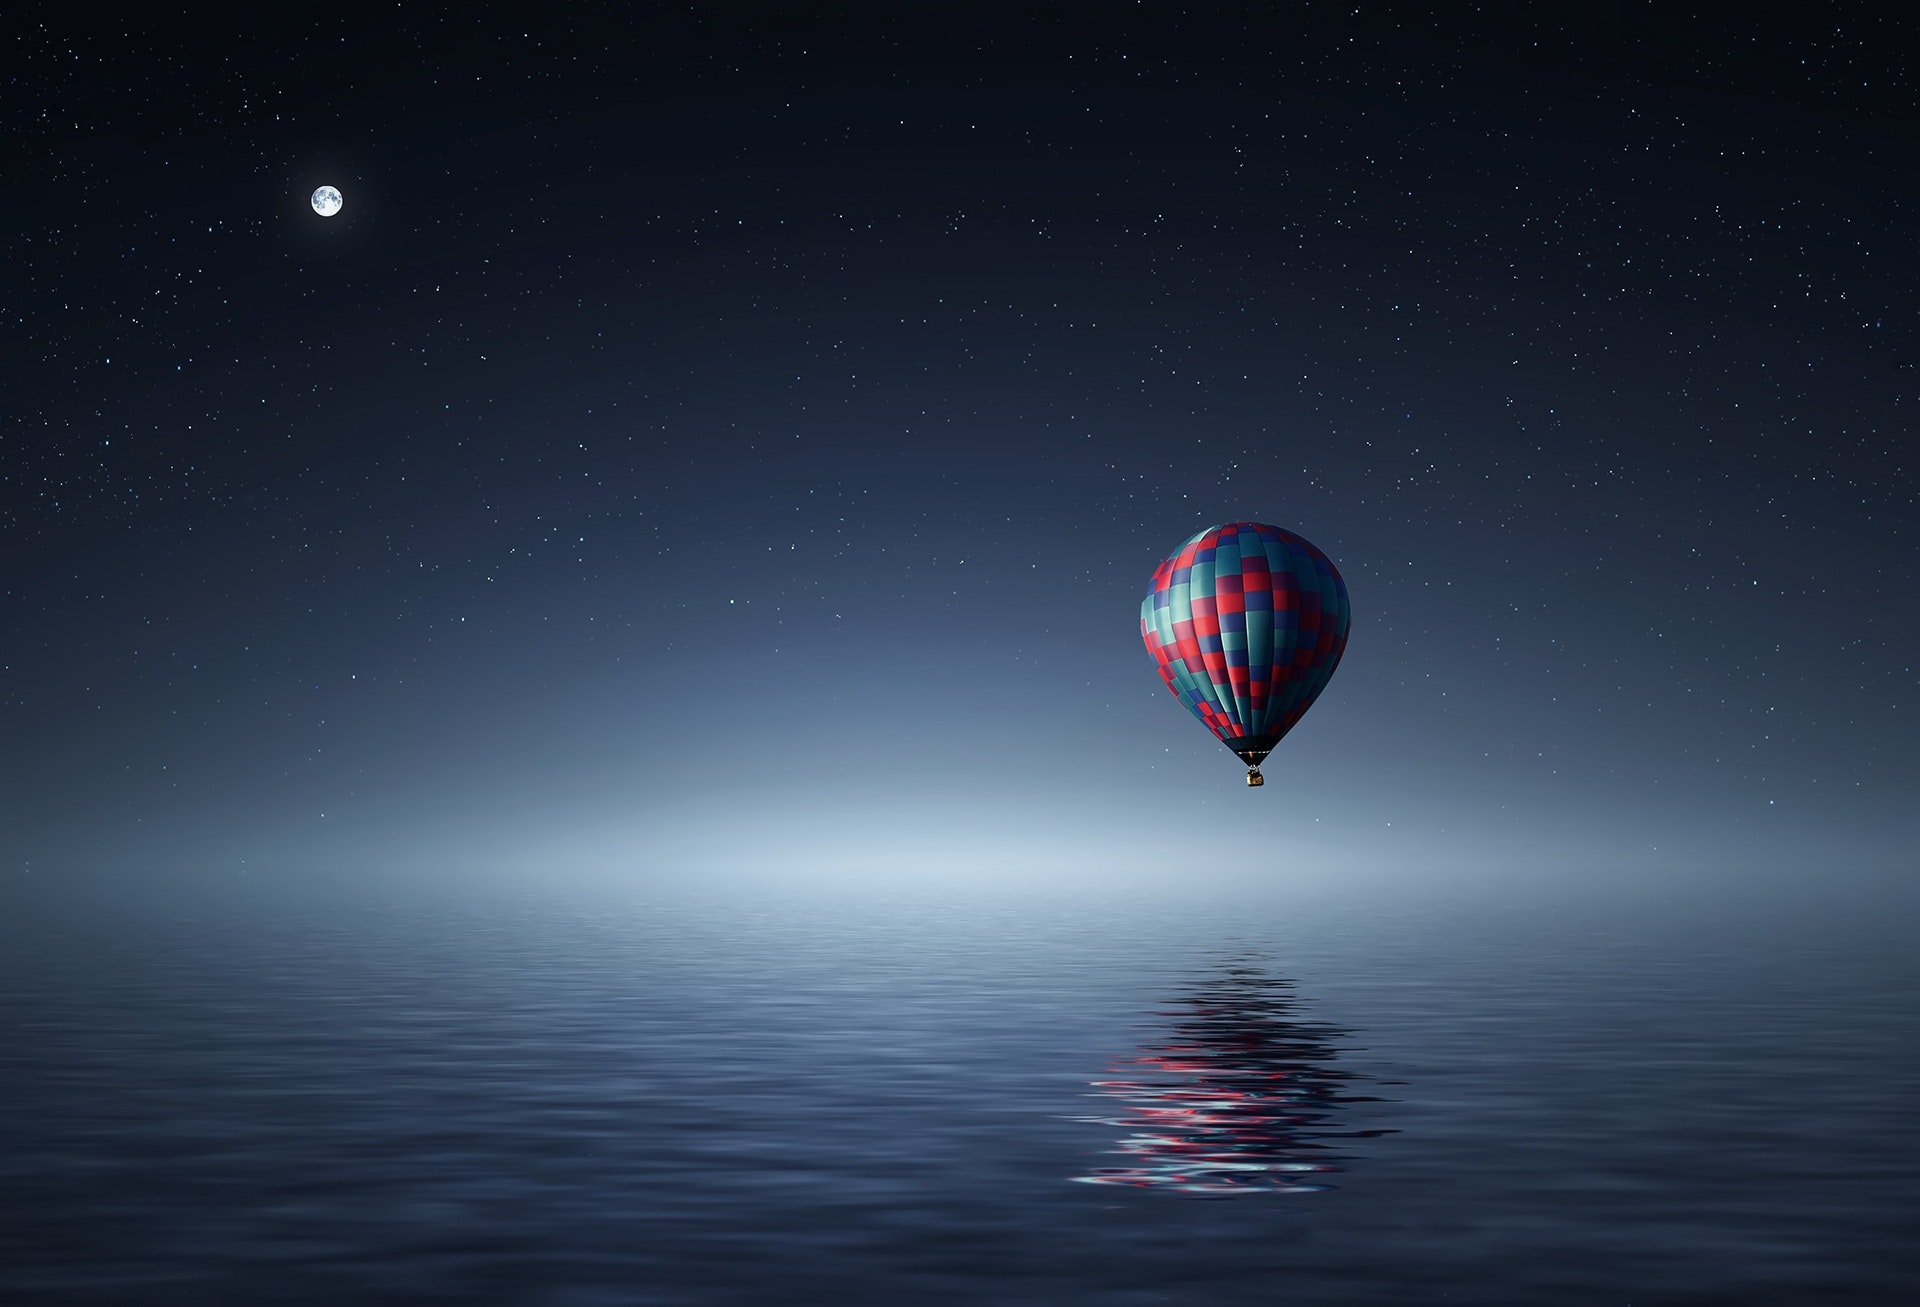 Red And Blue Hot Air Balloon Floating On Air On Body Of Water